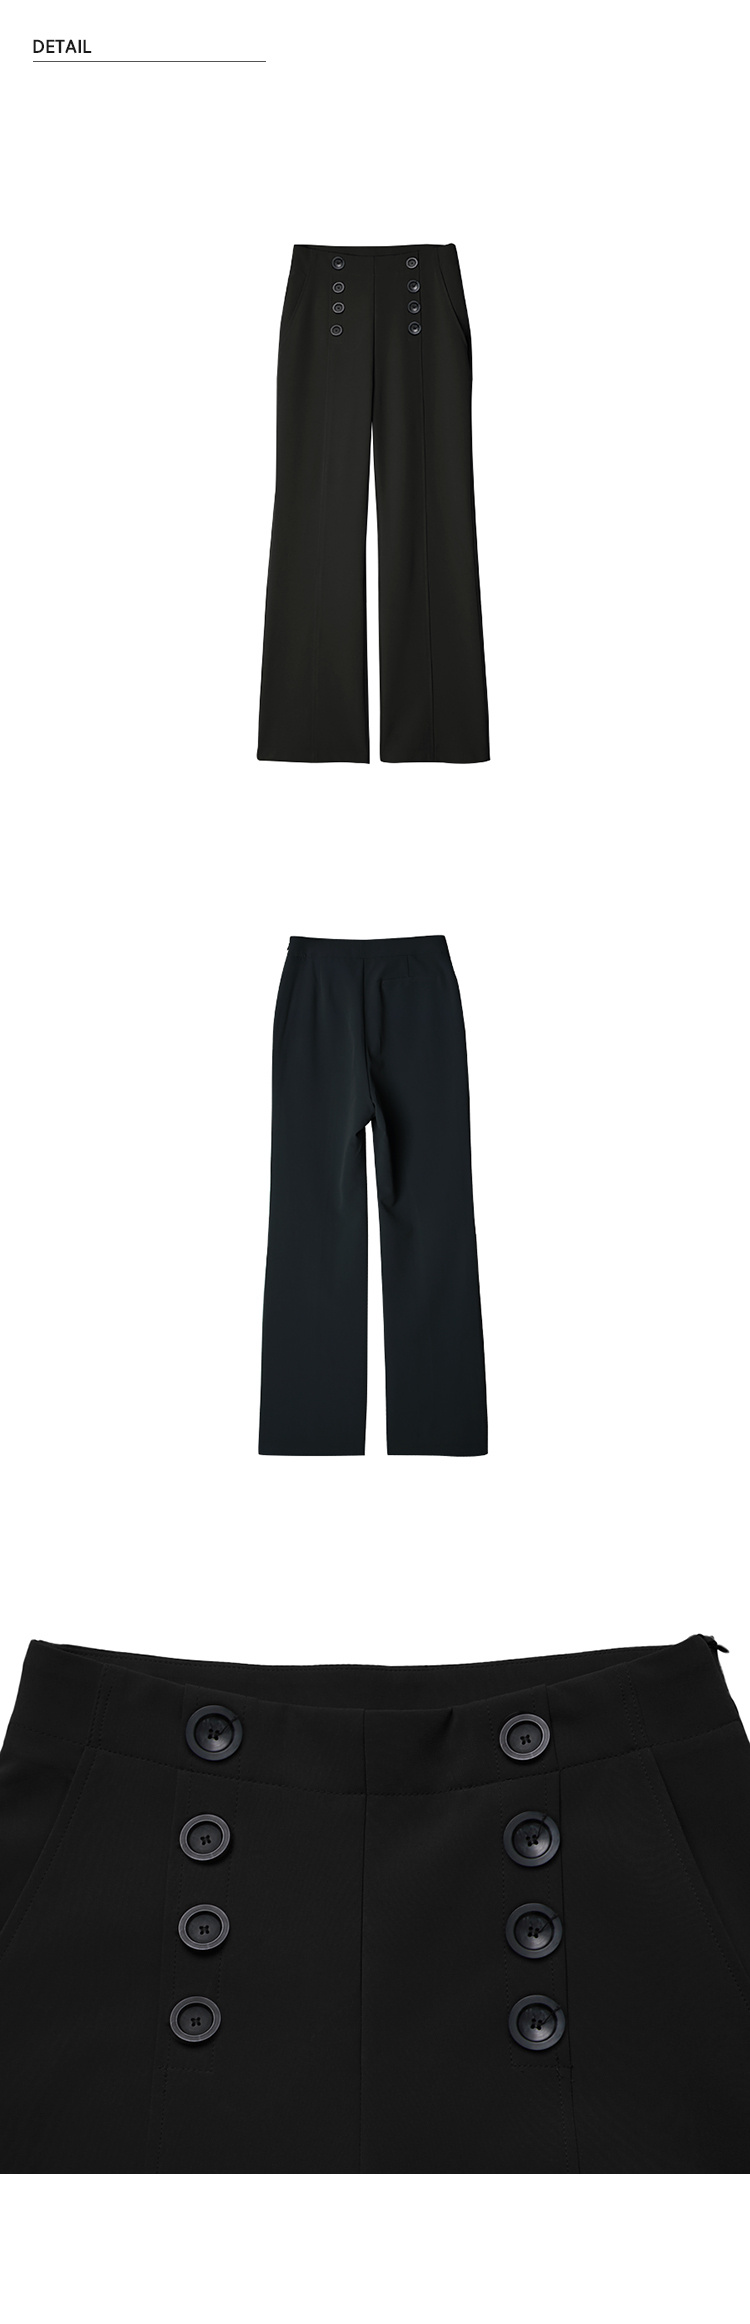 몬츠(MONTS) 852 button slacks (black)